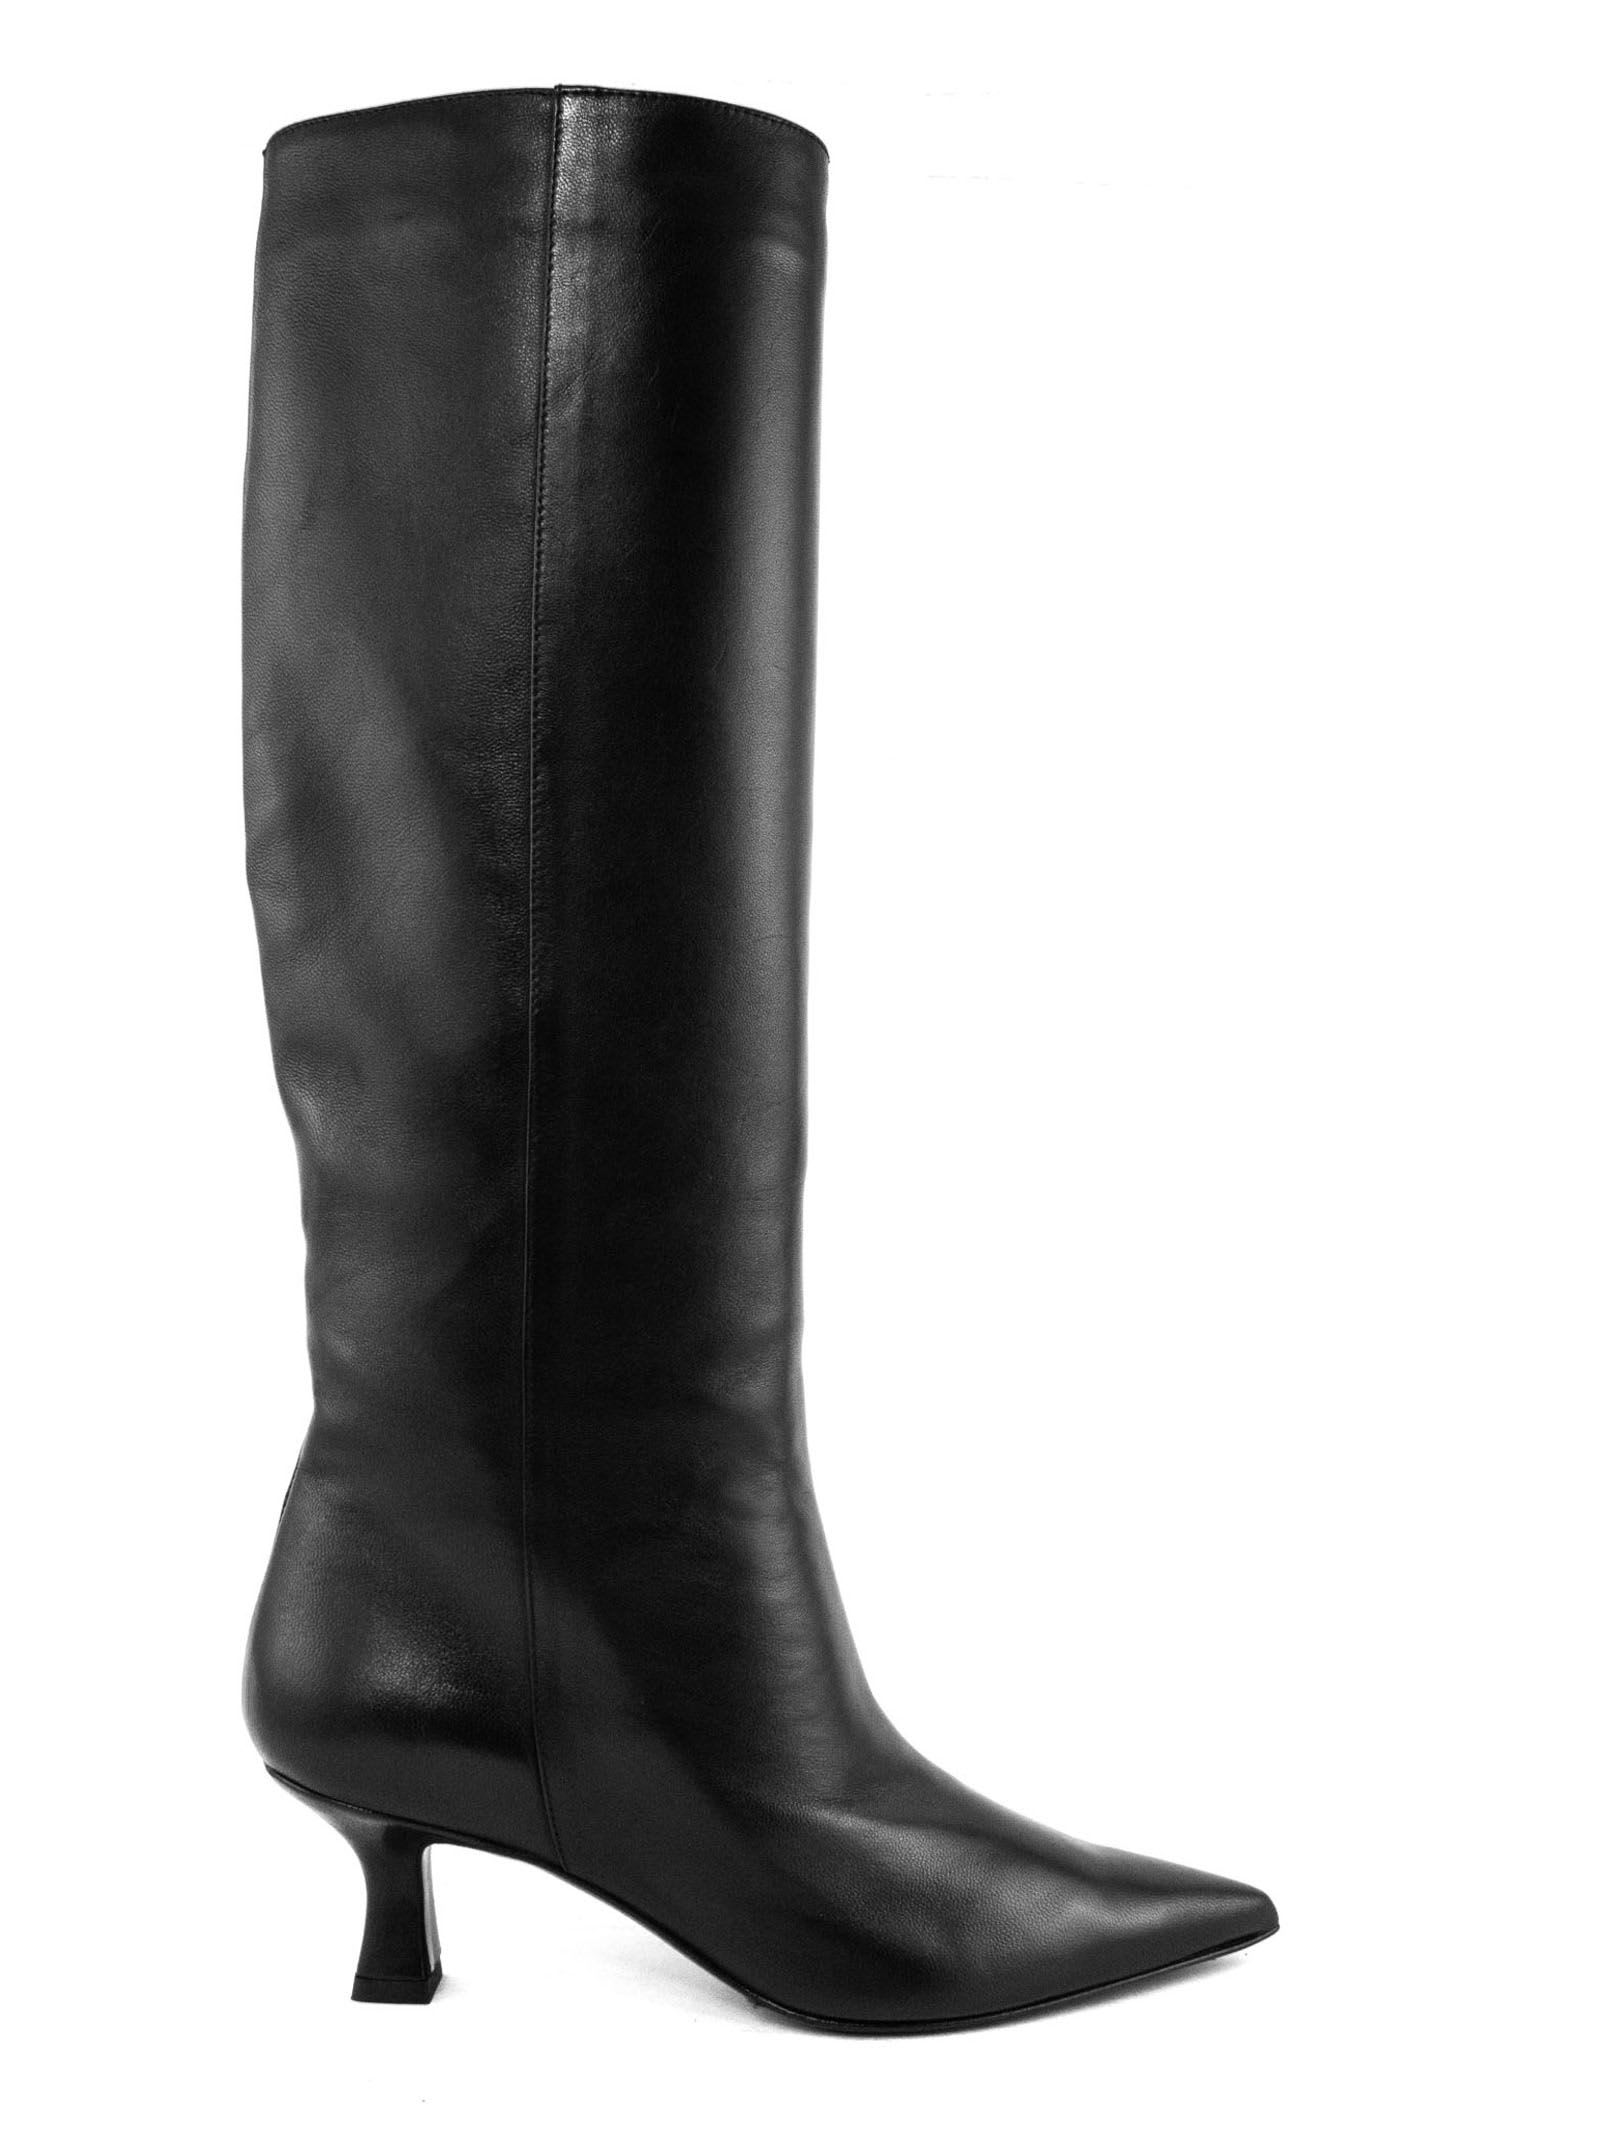 Dorotea High Boot In Black Leather